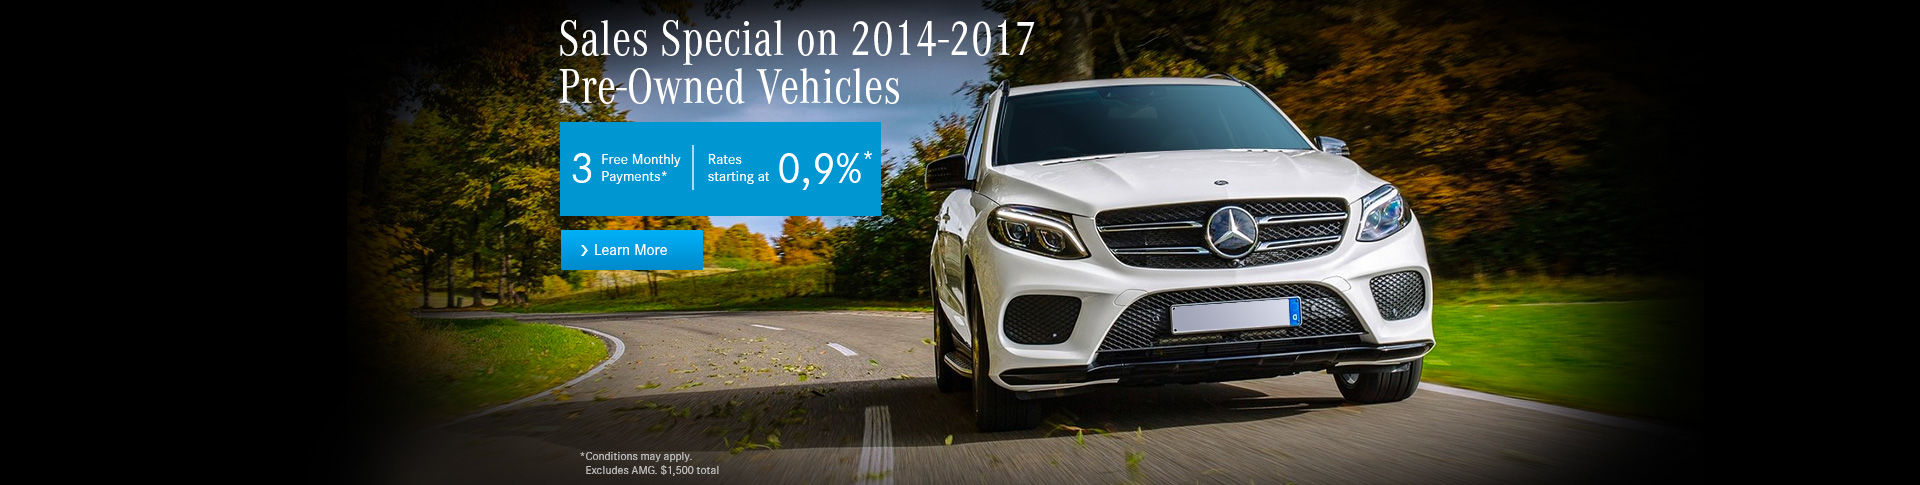 2014-2017 Pre-Owned Vehicles